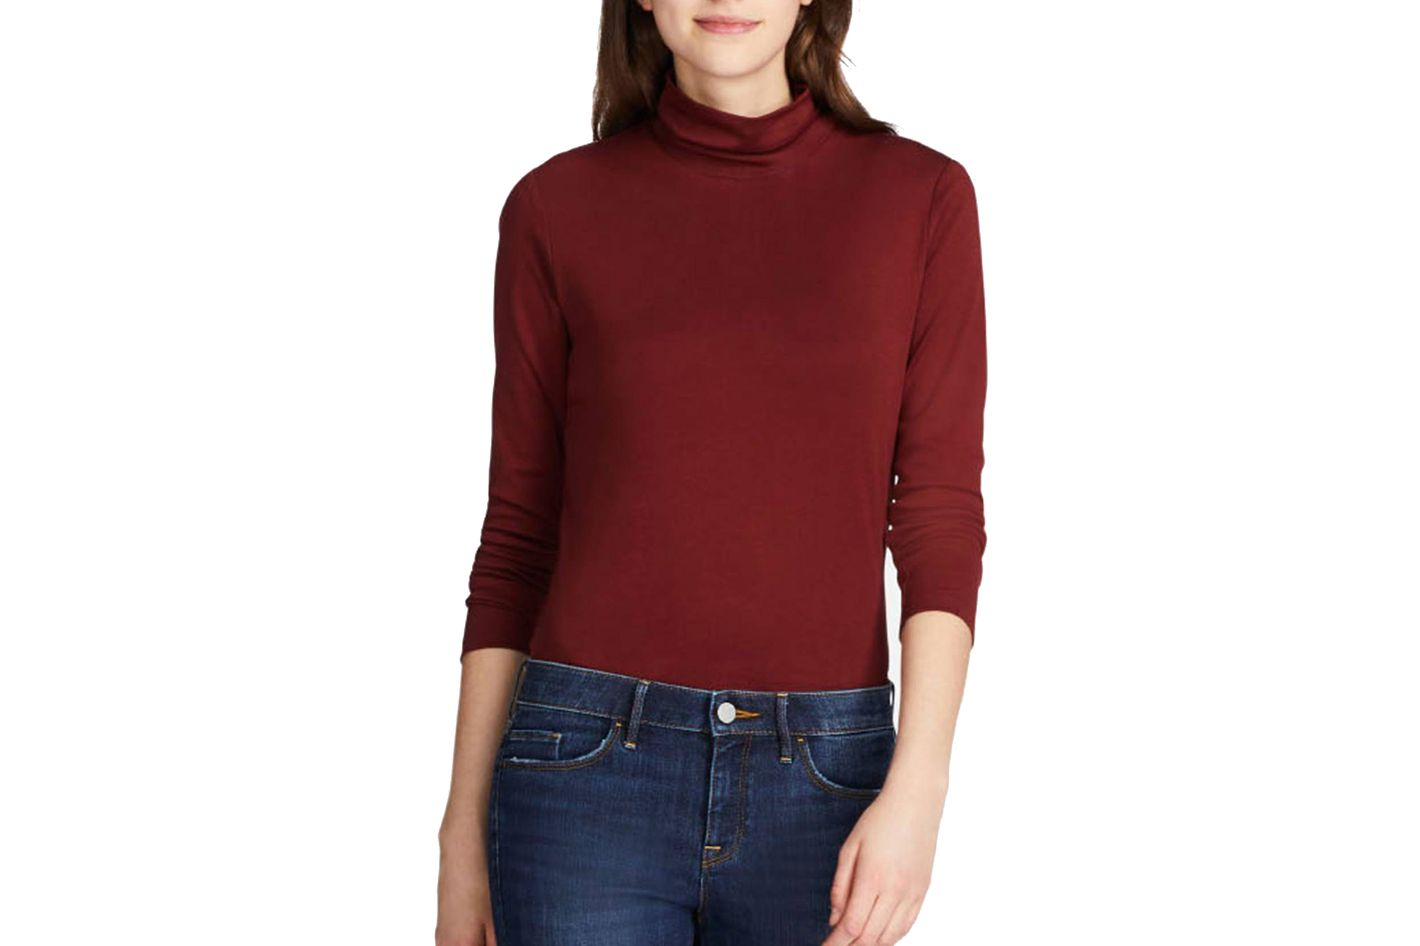 56efc539c59f6 Uniqlo Women s Supima Cotton Long-Sleeve Turtleneck